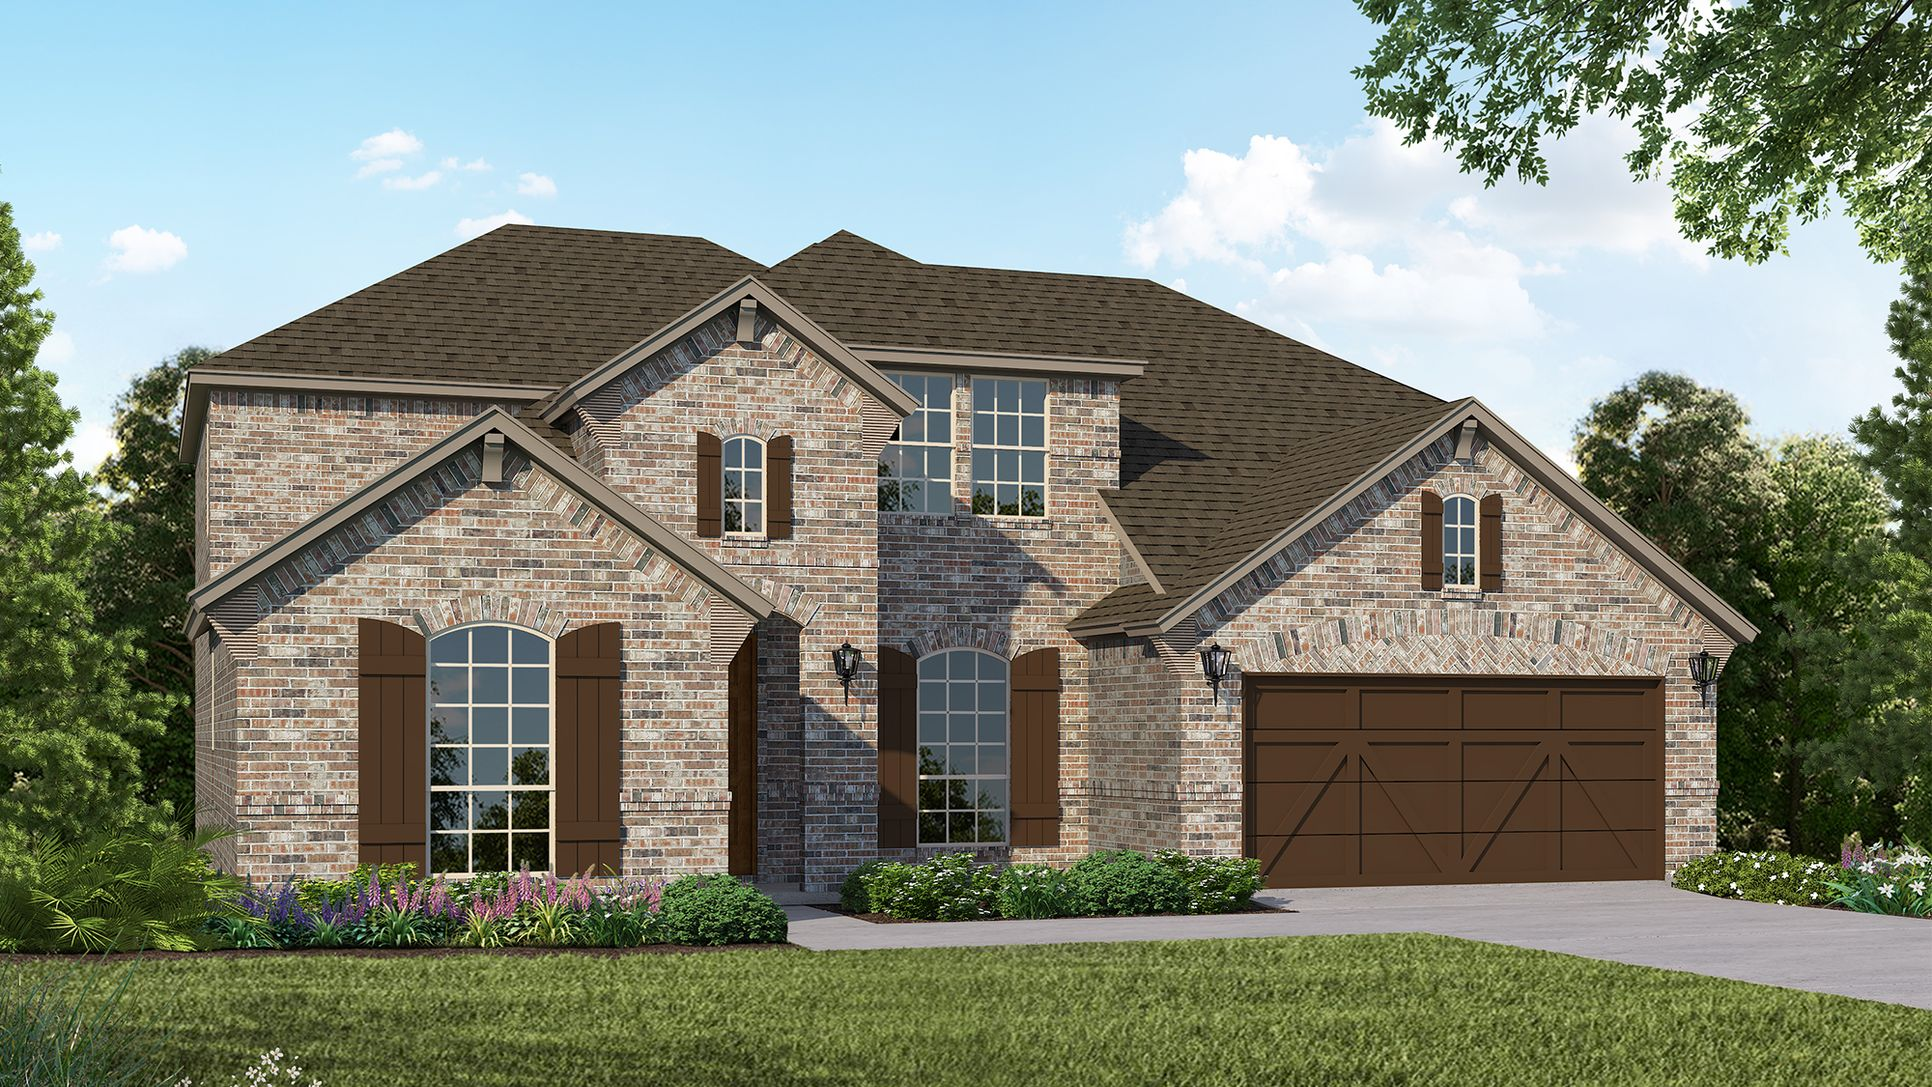 Exterior:Plan 1686 Elevation B by American Legend Homes